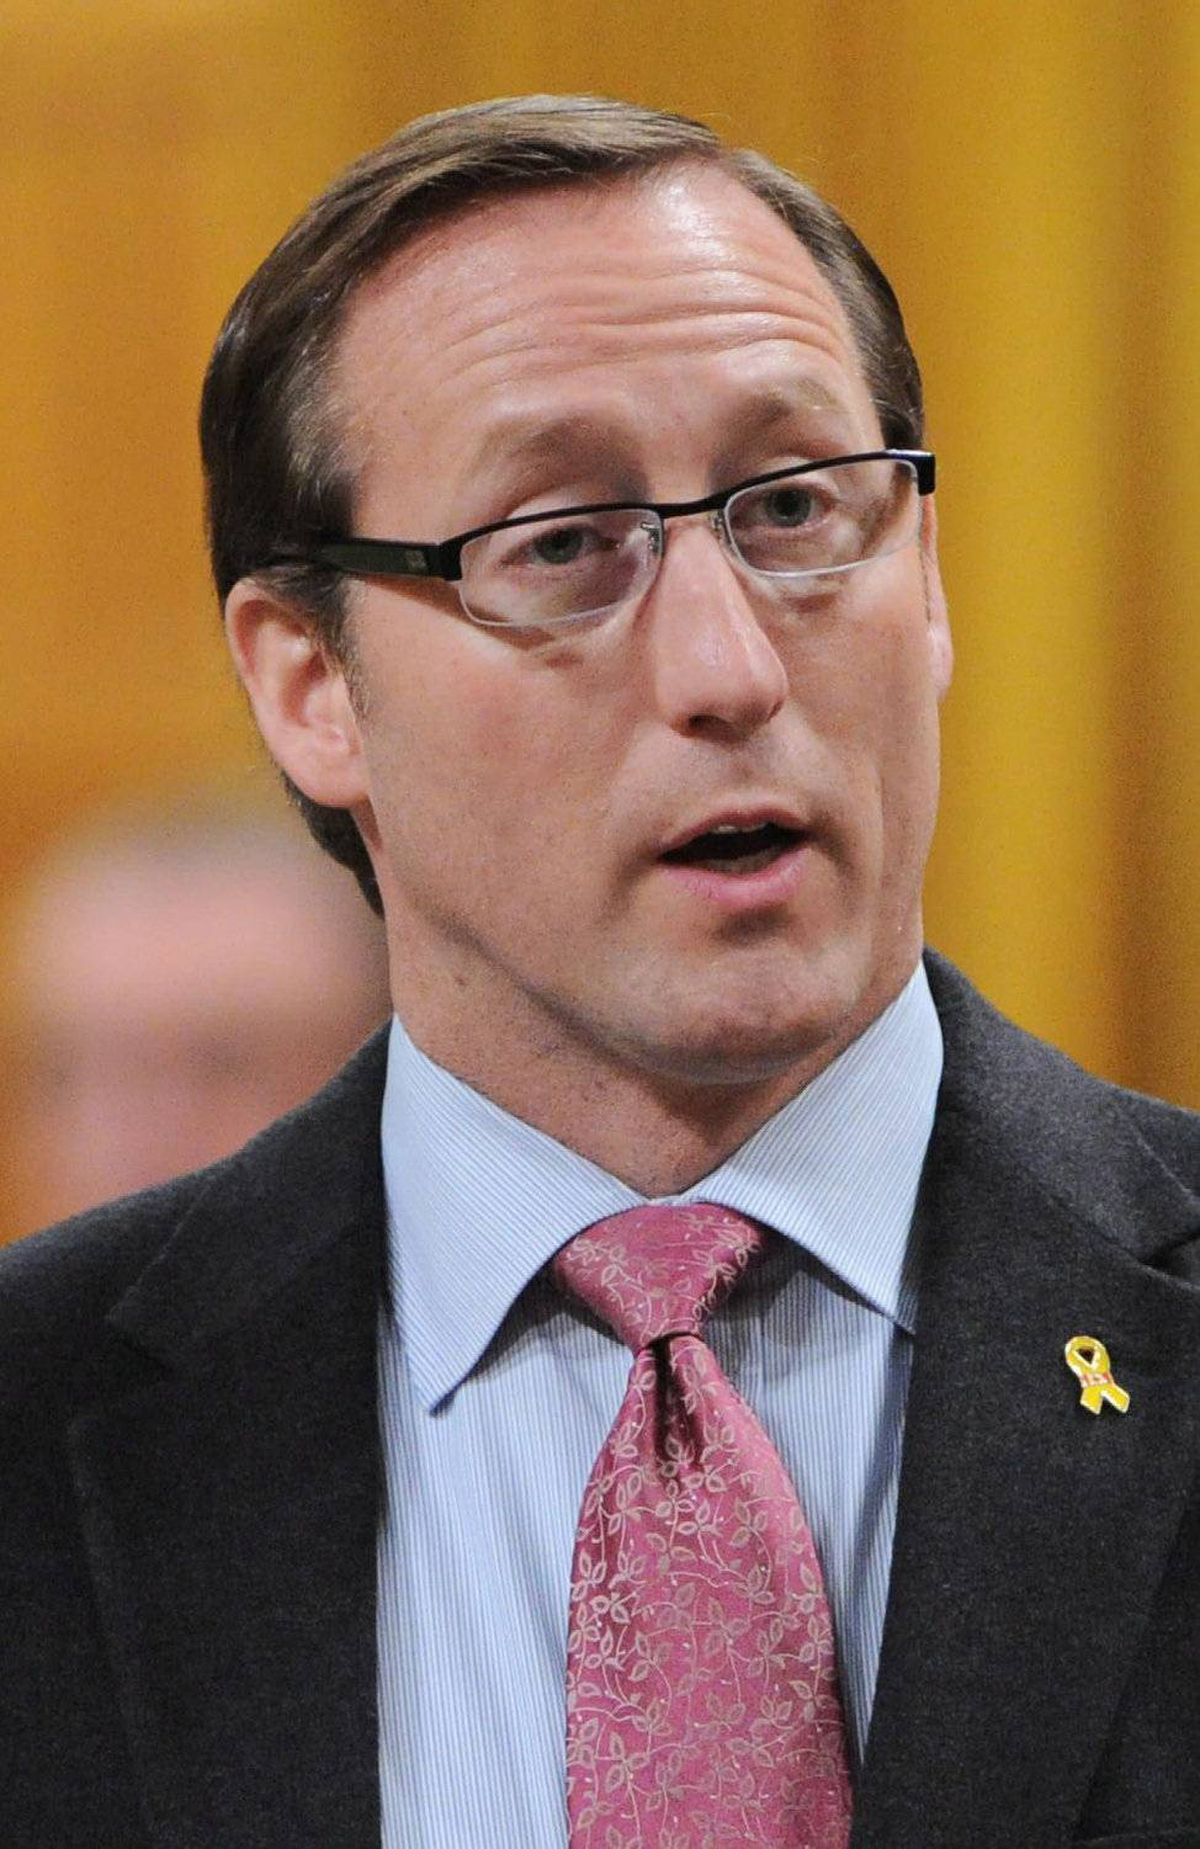 Minister of National Defence Peter MacKay responds to a question during question period in the House of Commons on Parliament Hill in Ottawa on Friday, March 9, 2012.